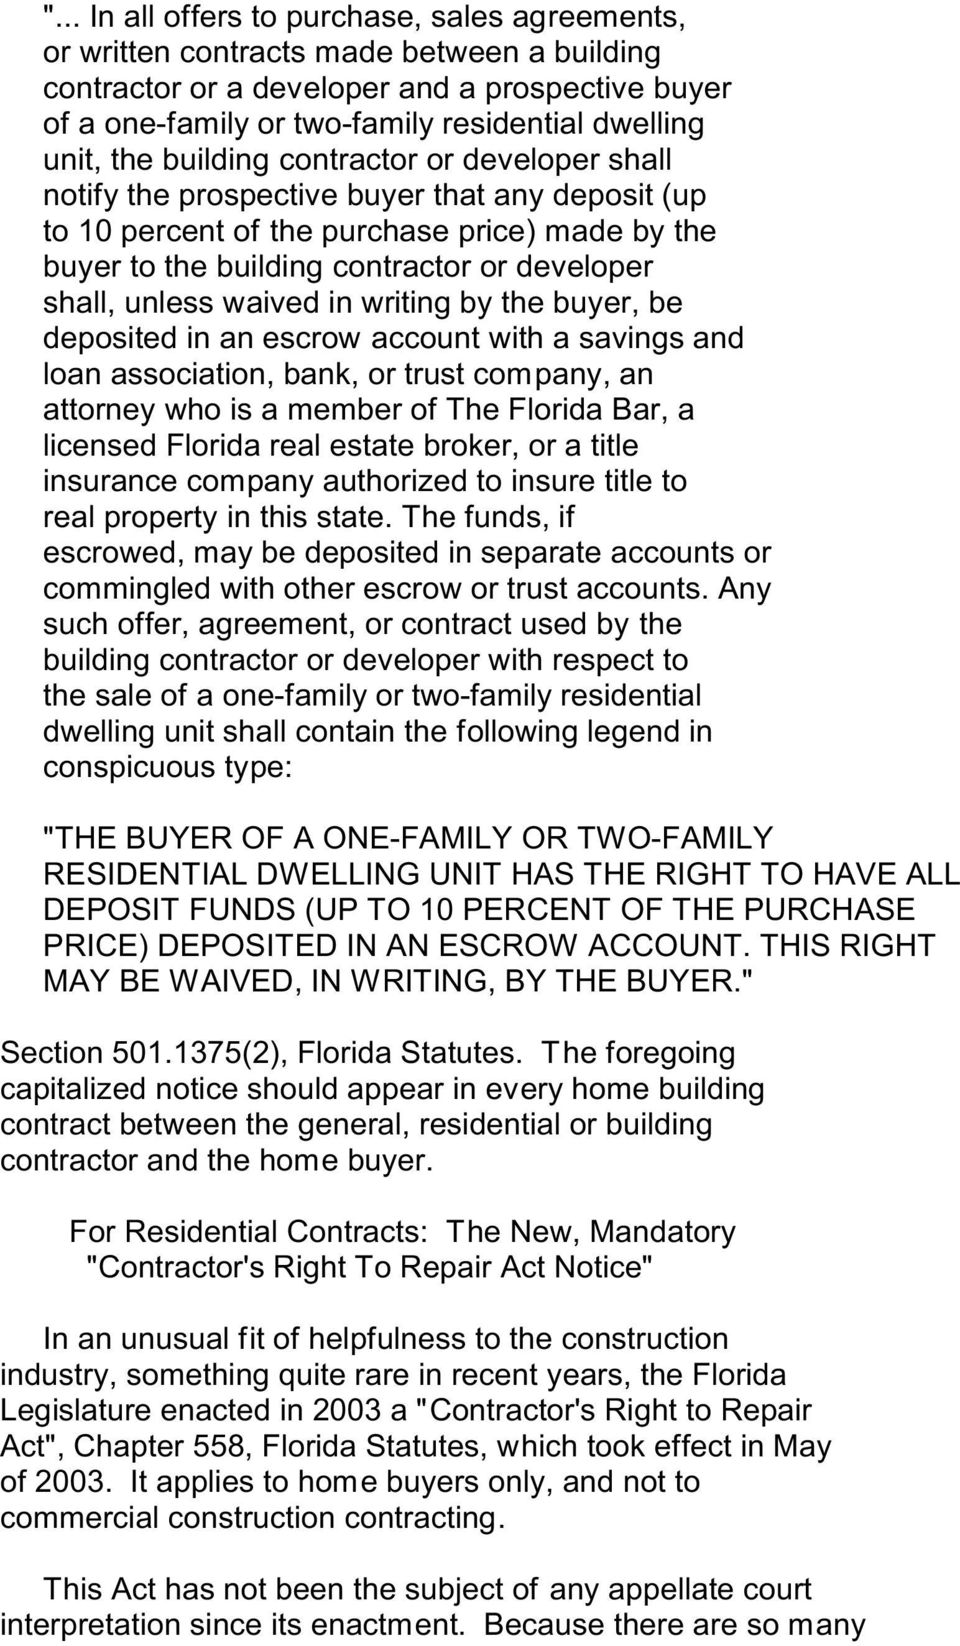 The Fundamentals of Florida Construction Contracts  By Bruce